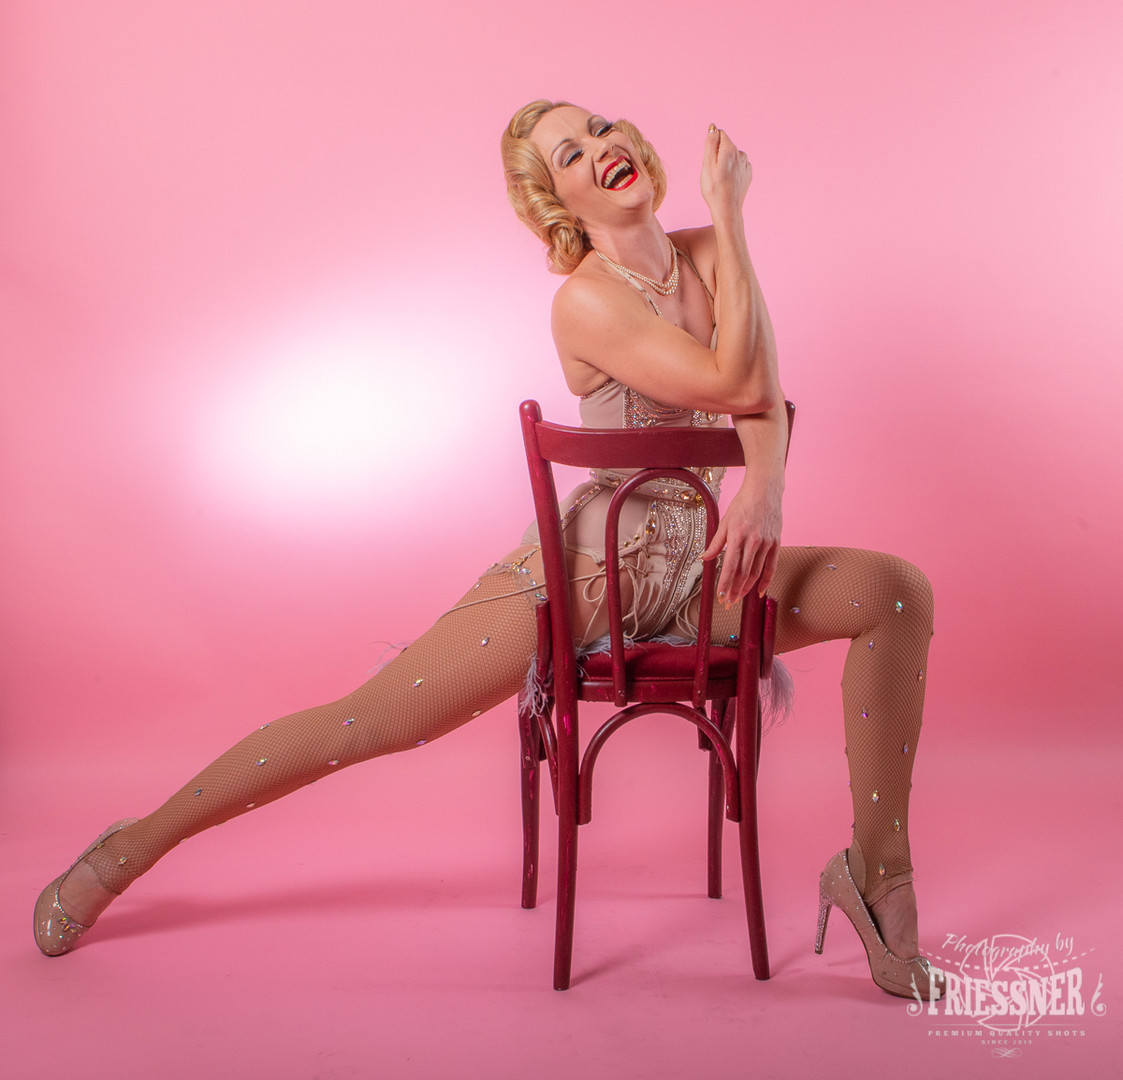 Ulrike Storch - Pretty in Pink